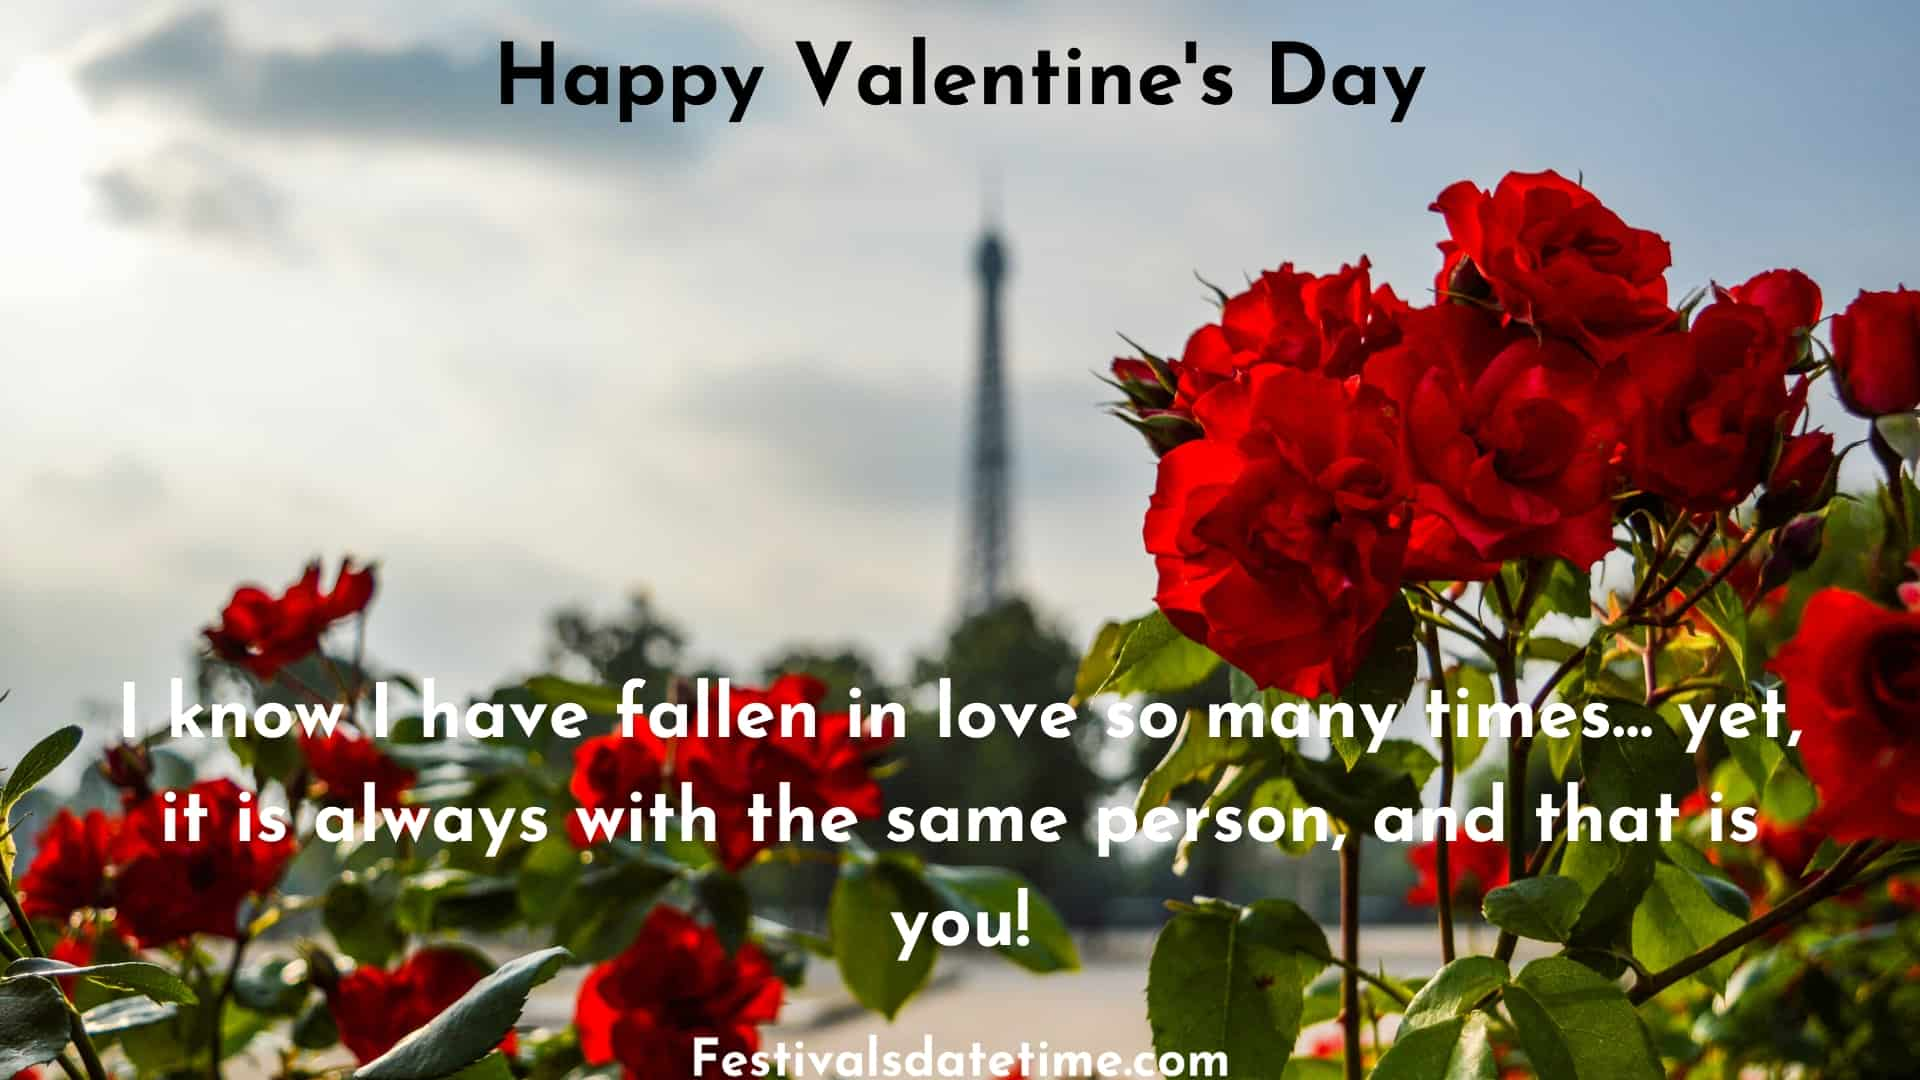 valentines_day_images_of_hearts